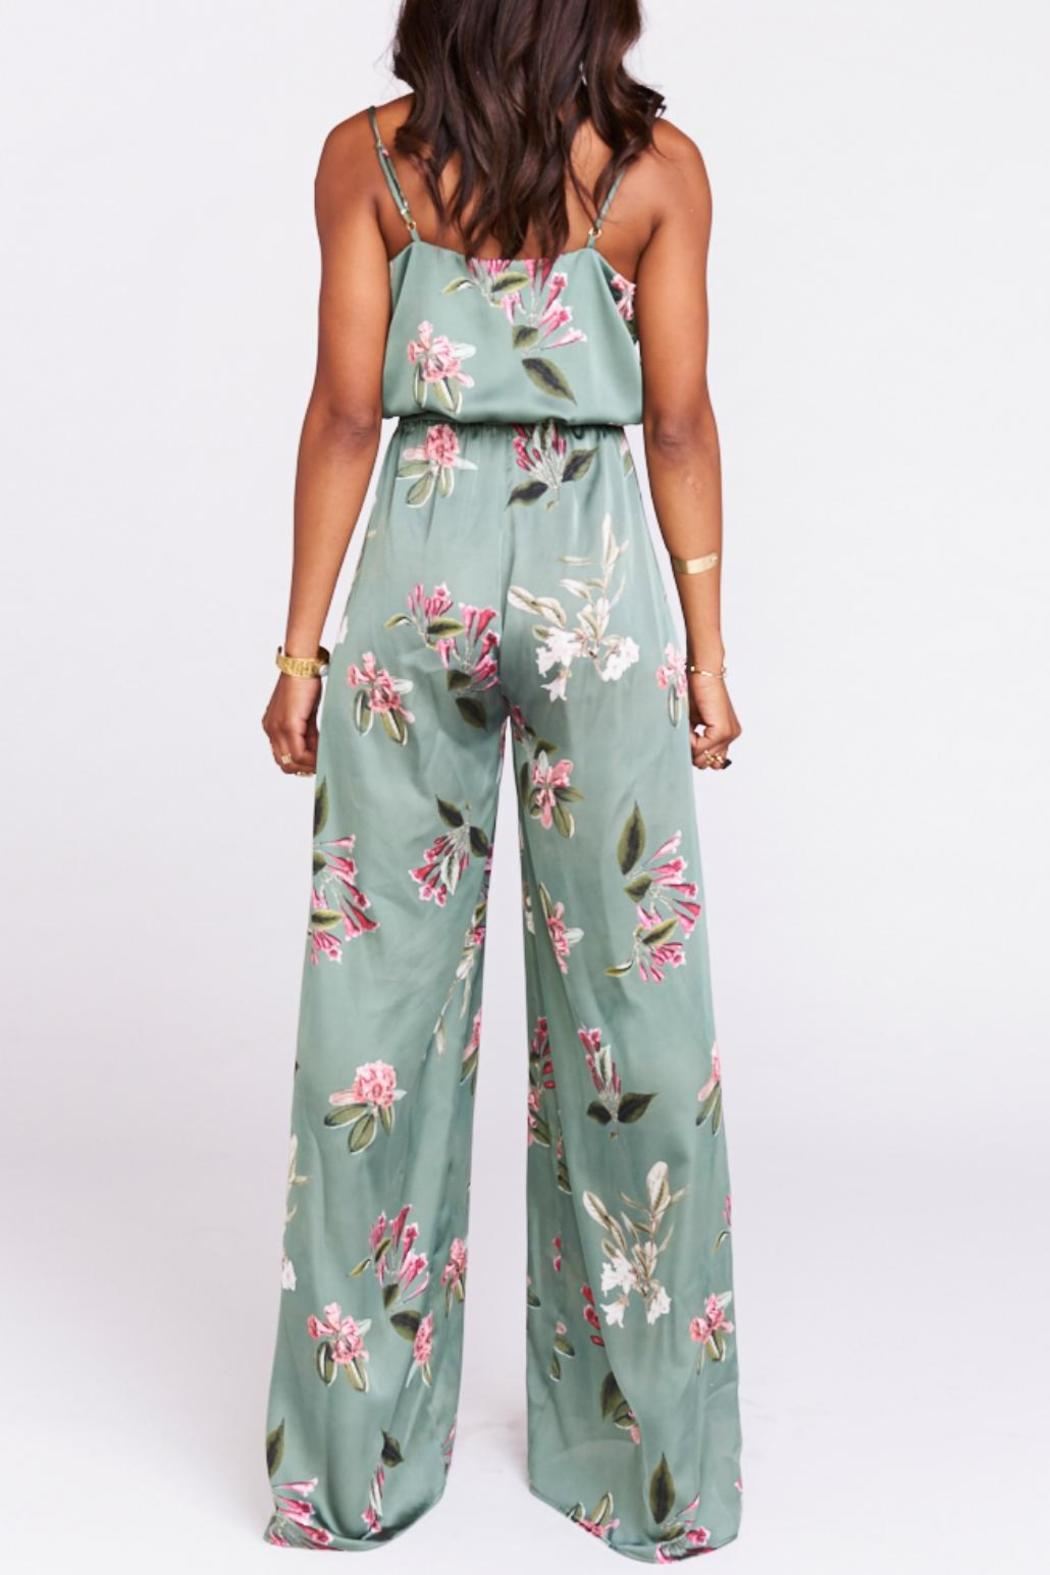 Show Me Your Mumu Satin Floral Jumpsuit From Dallas By